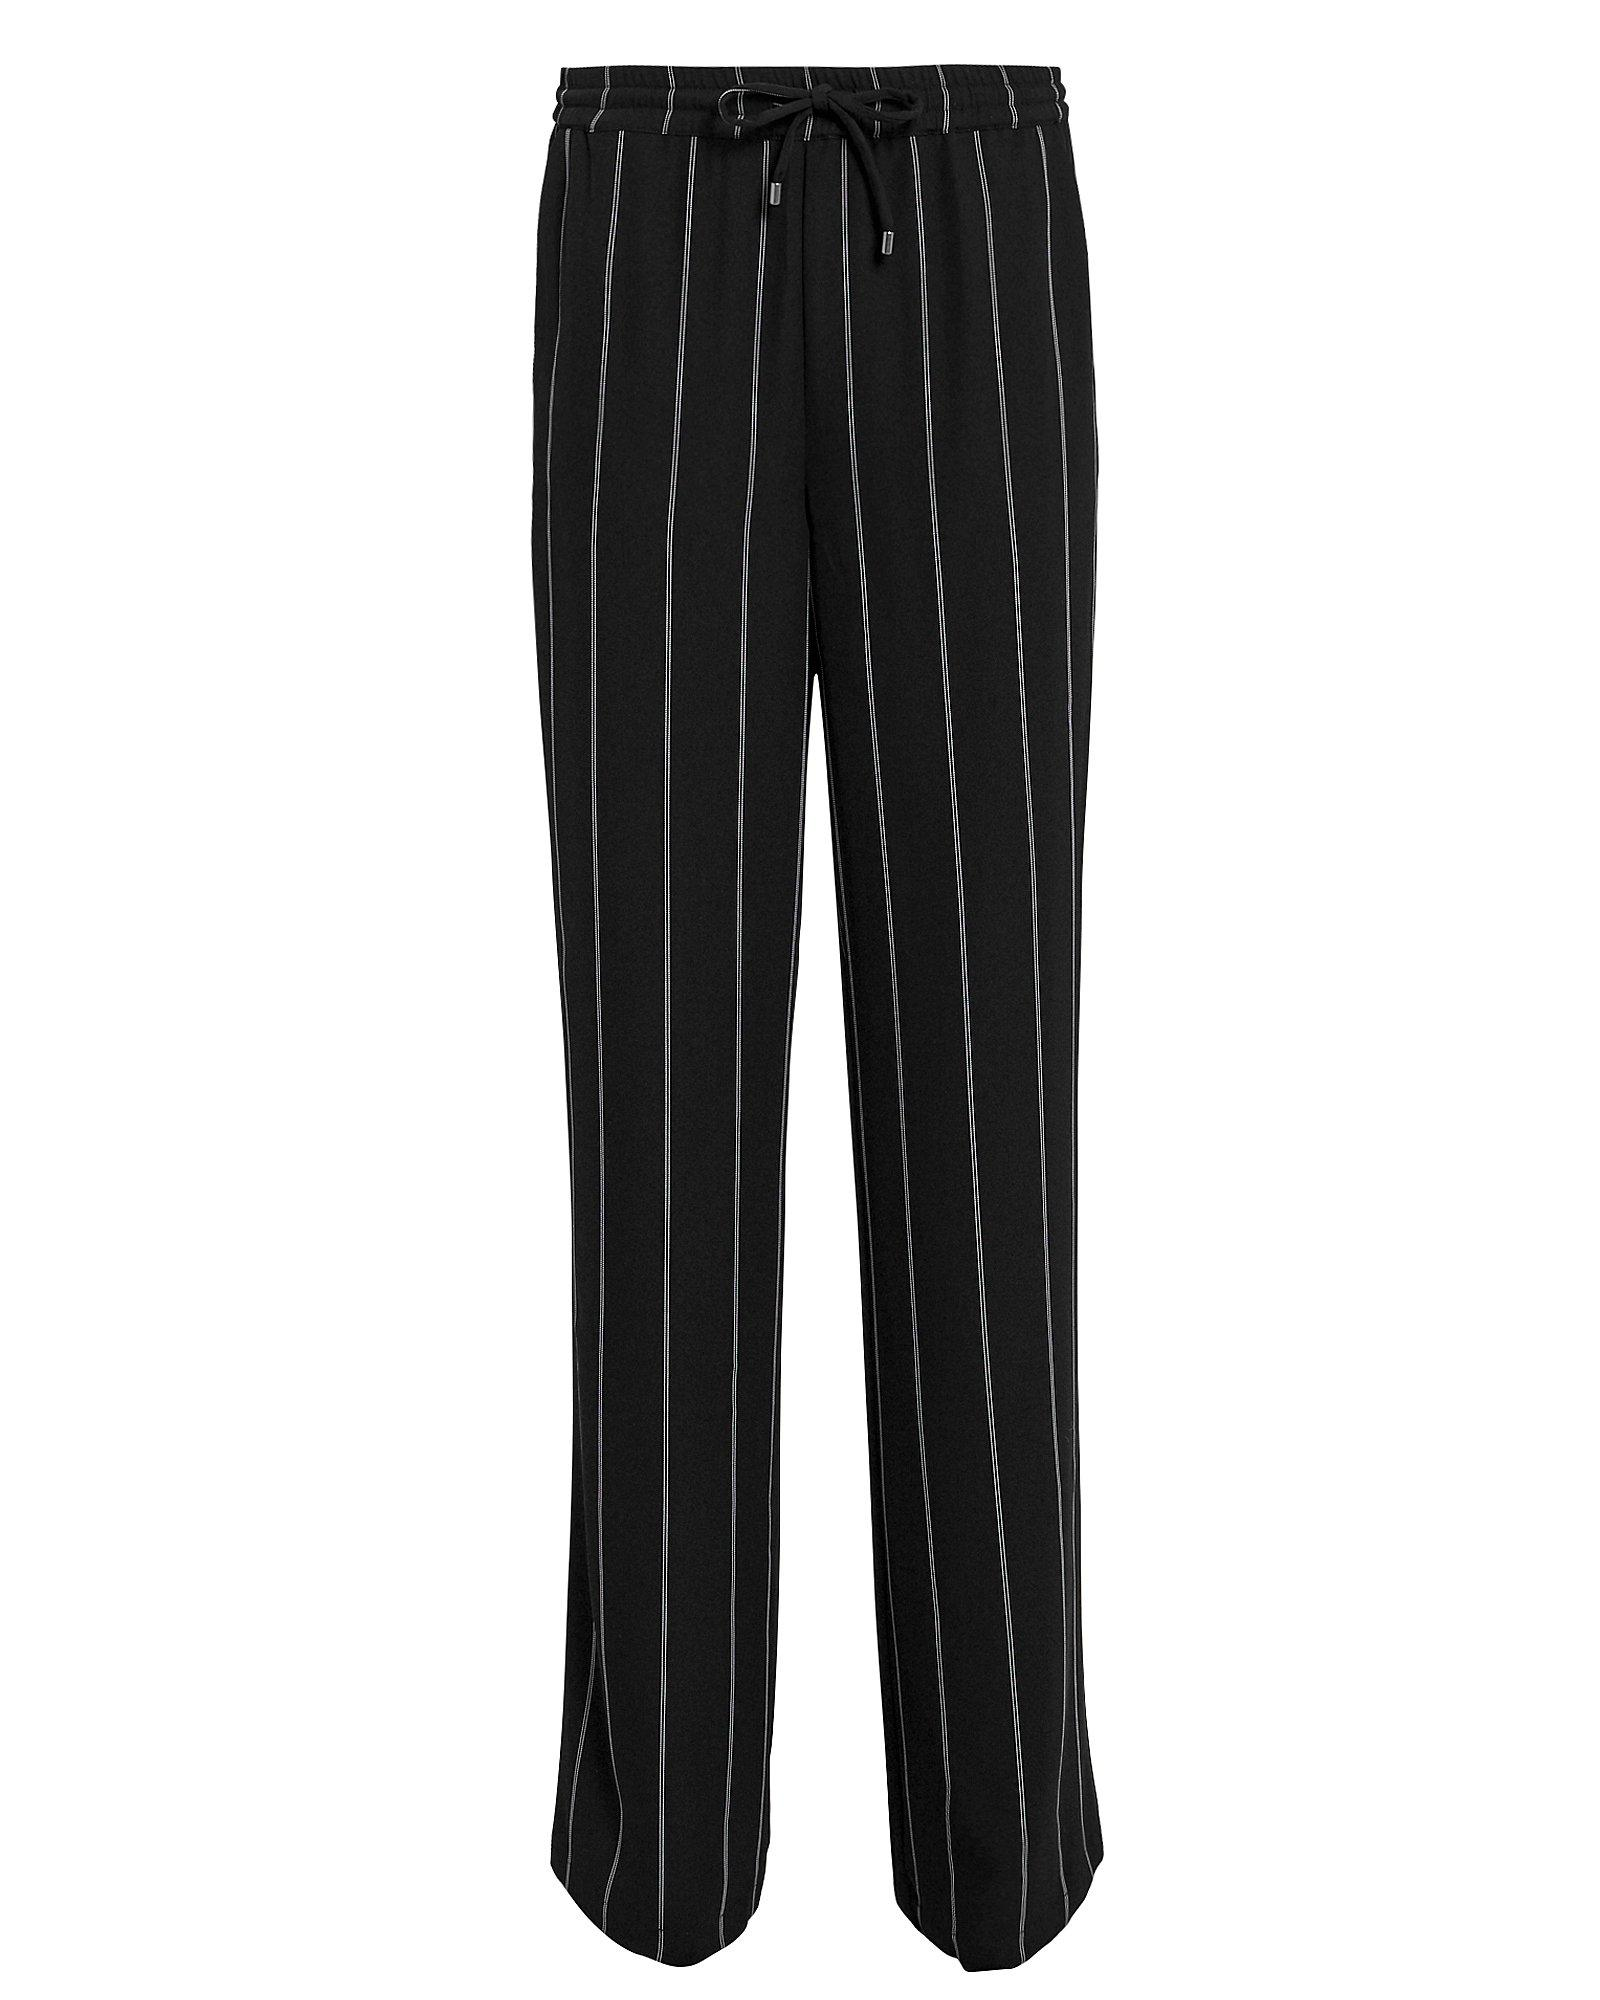 e52cd8aca7a1a Lyst - Anine Bing Isabella Pants in Black